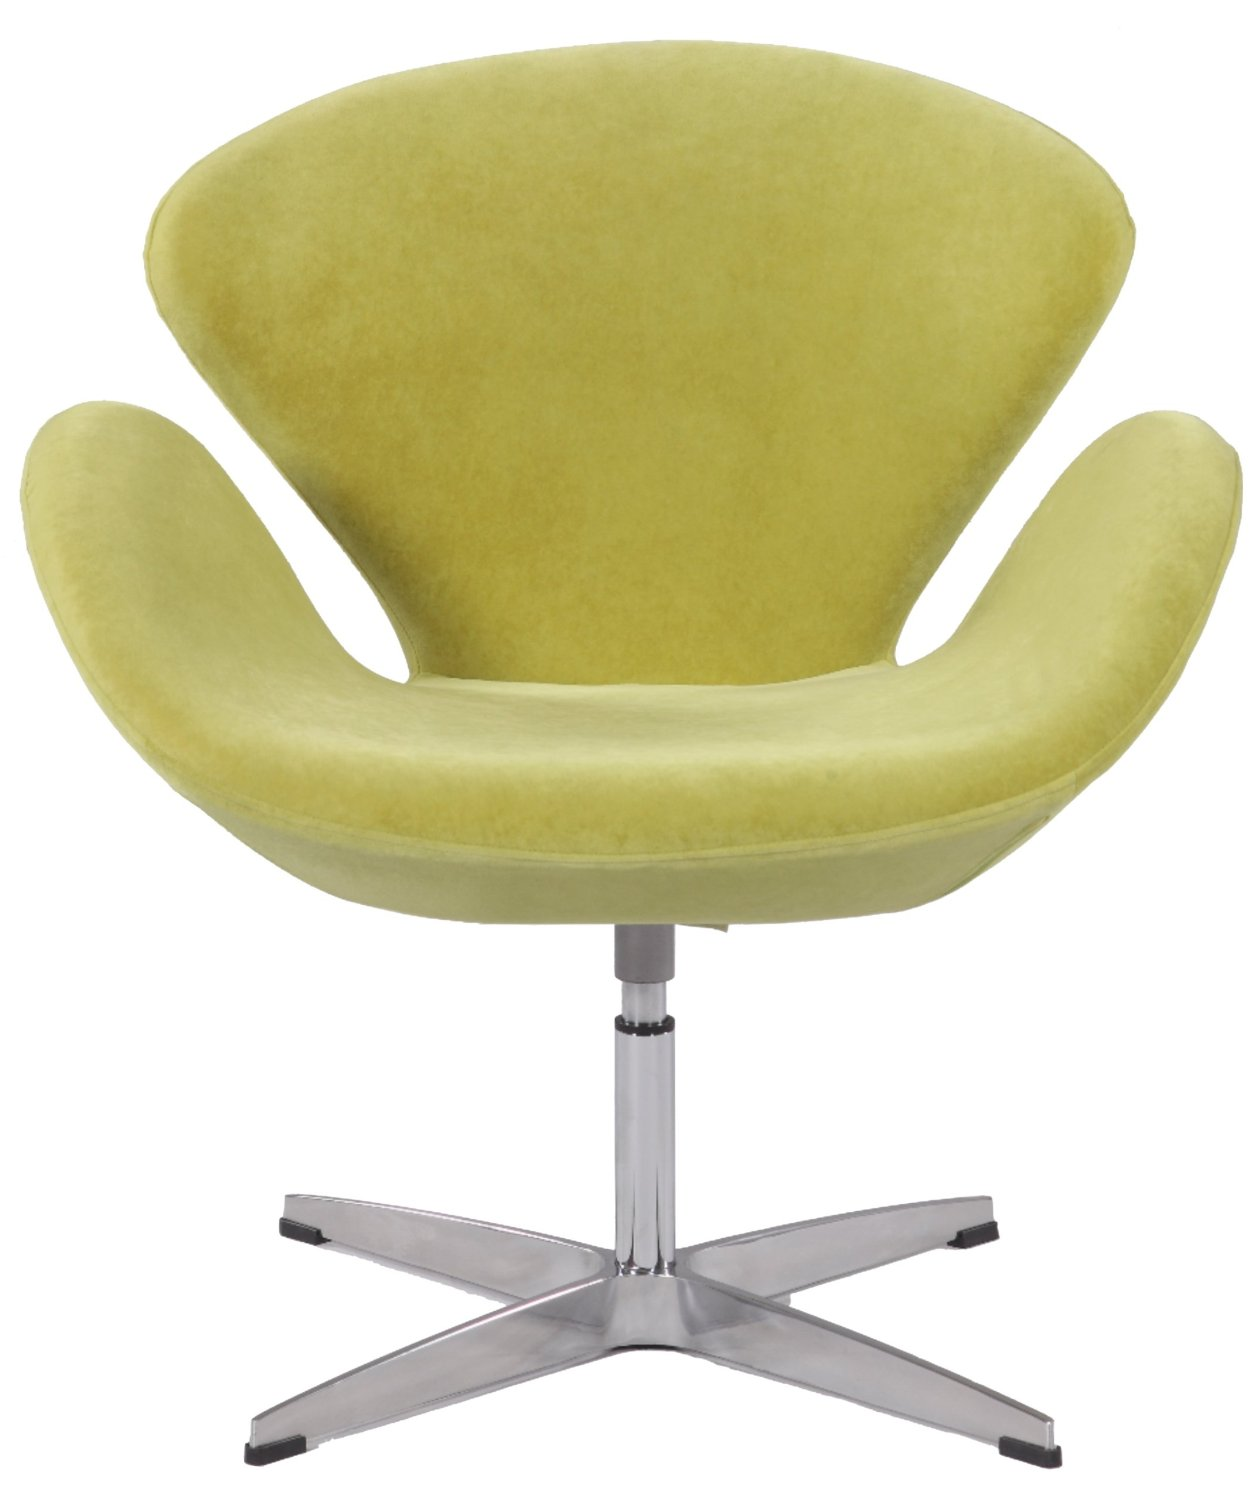 Total Fab Mid Century Modern Swivel Chairs